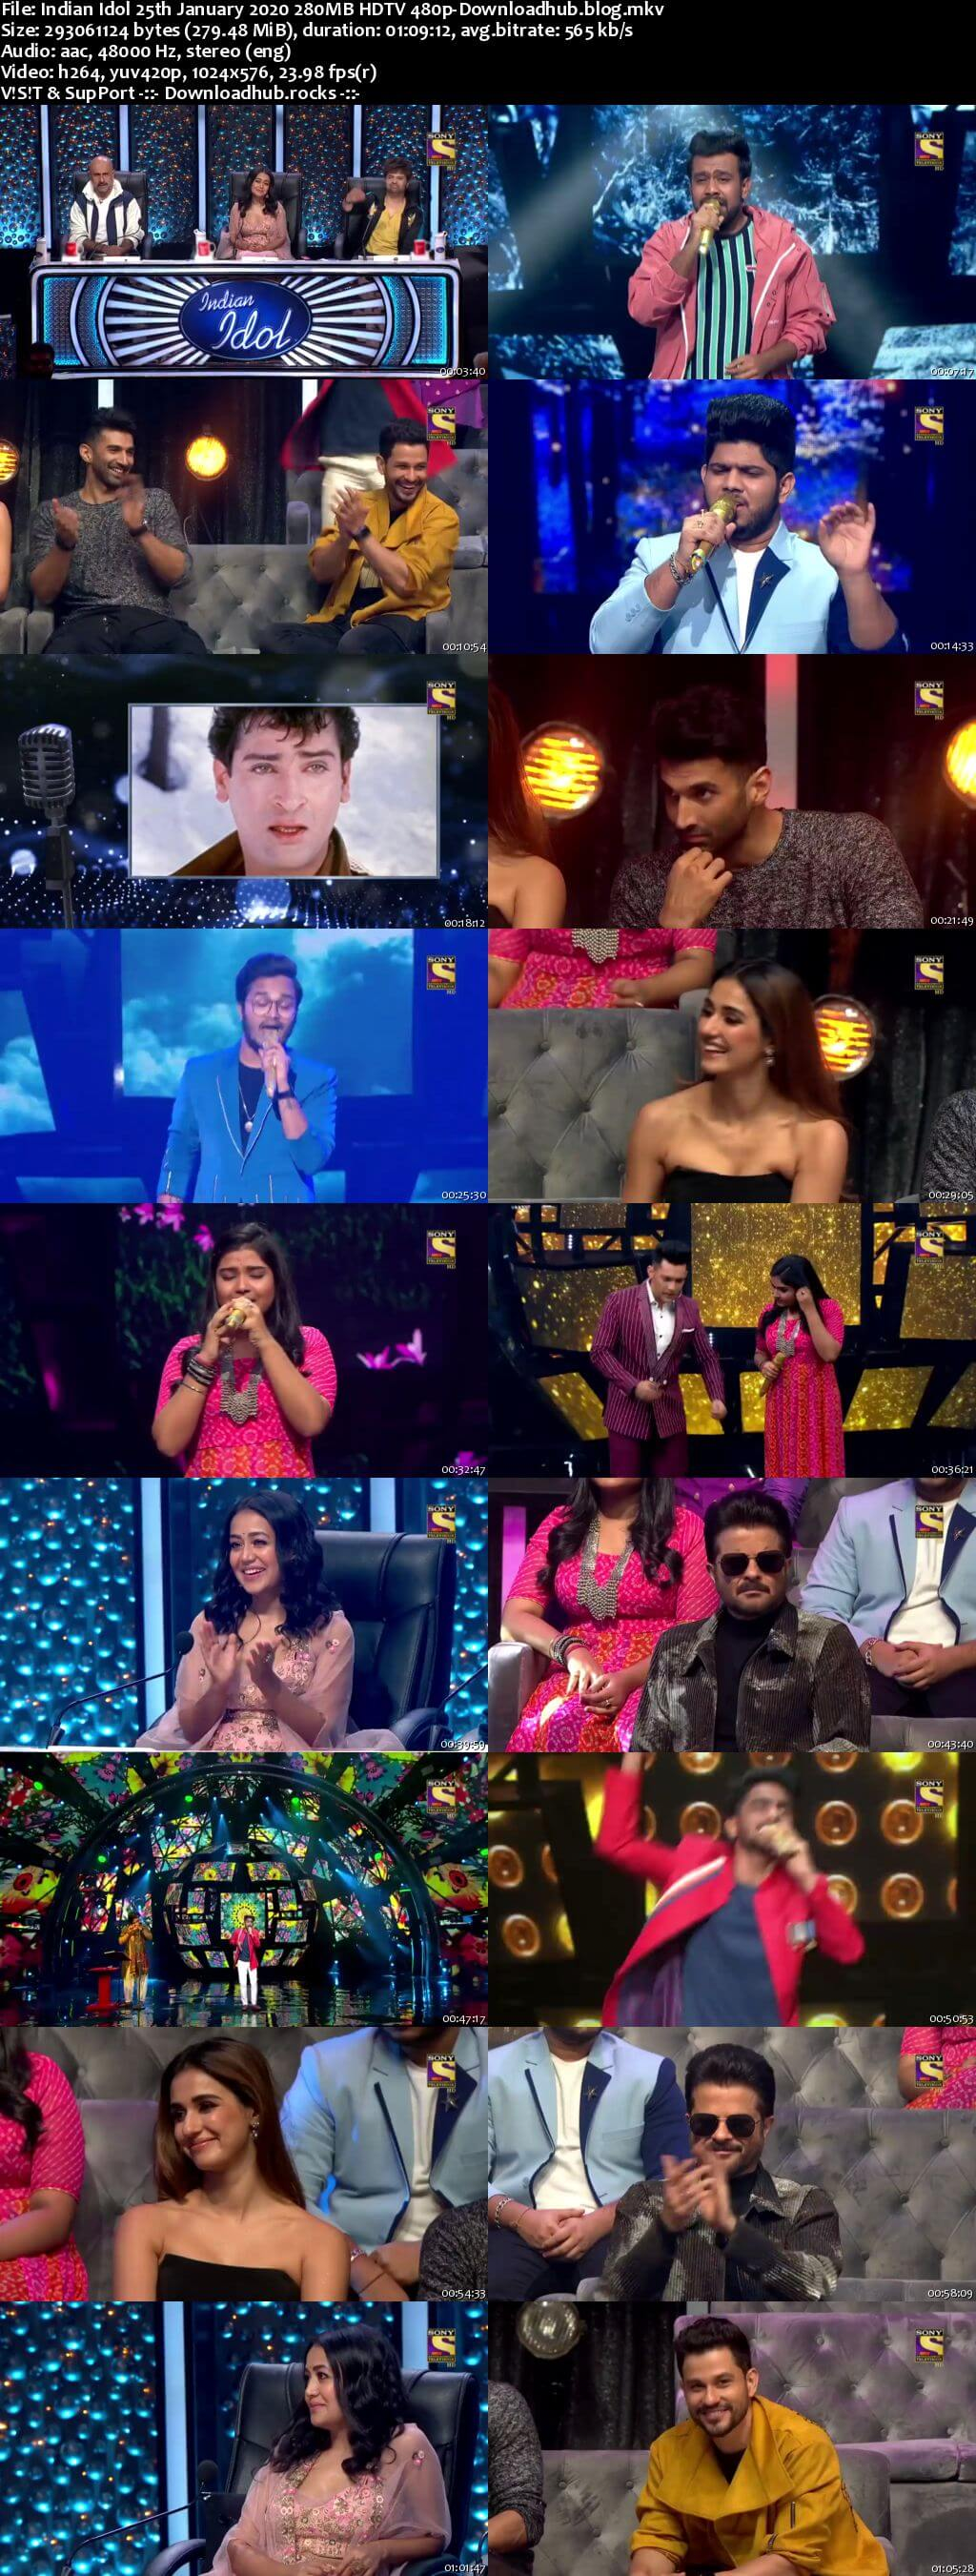 Indian Idol 25 January 2020 Episode 30 HDTV 480p